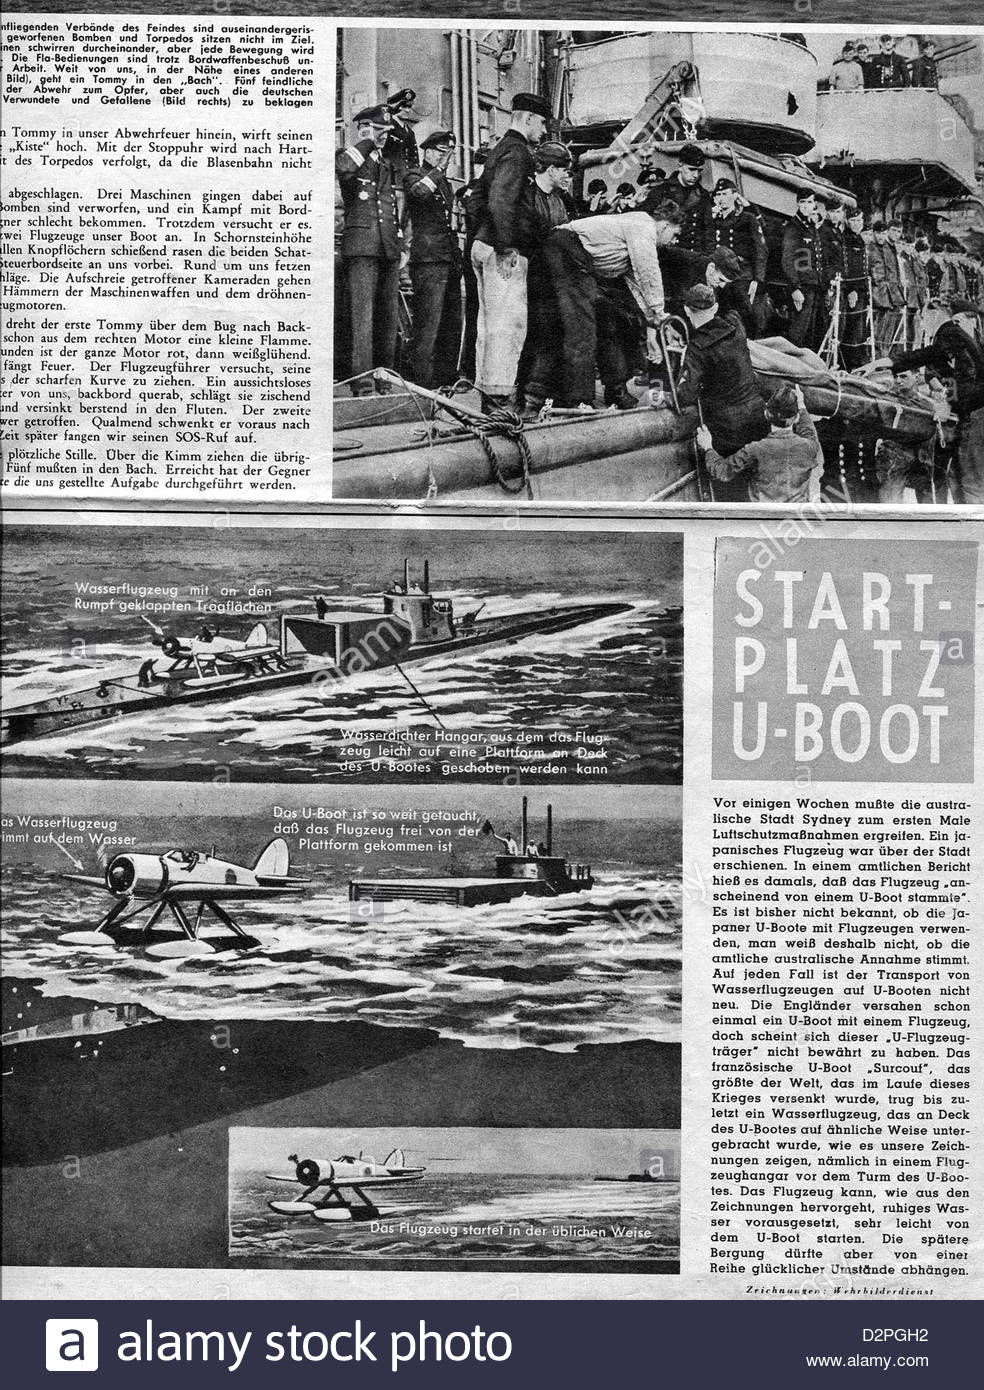 Page From Nazi German Propaganda Newspaper Showing U boats In Page From Nazi German Propaganda Newspaper Showing U Boats In Warfare DPGH Stock Photo Page From Nazi German Propaganda Newspaper Showing U Boats In Warfare